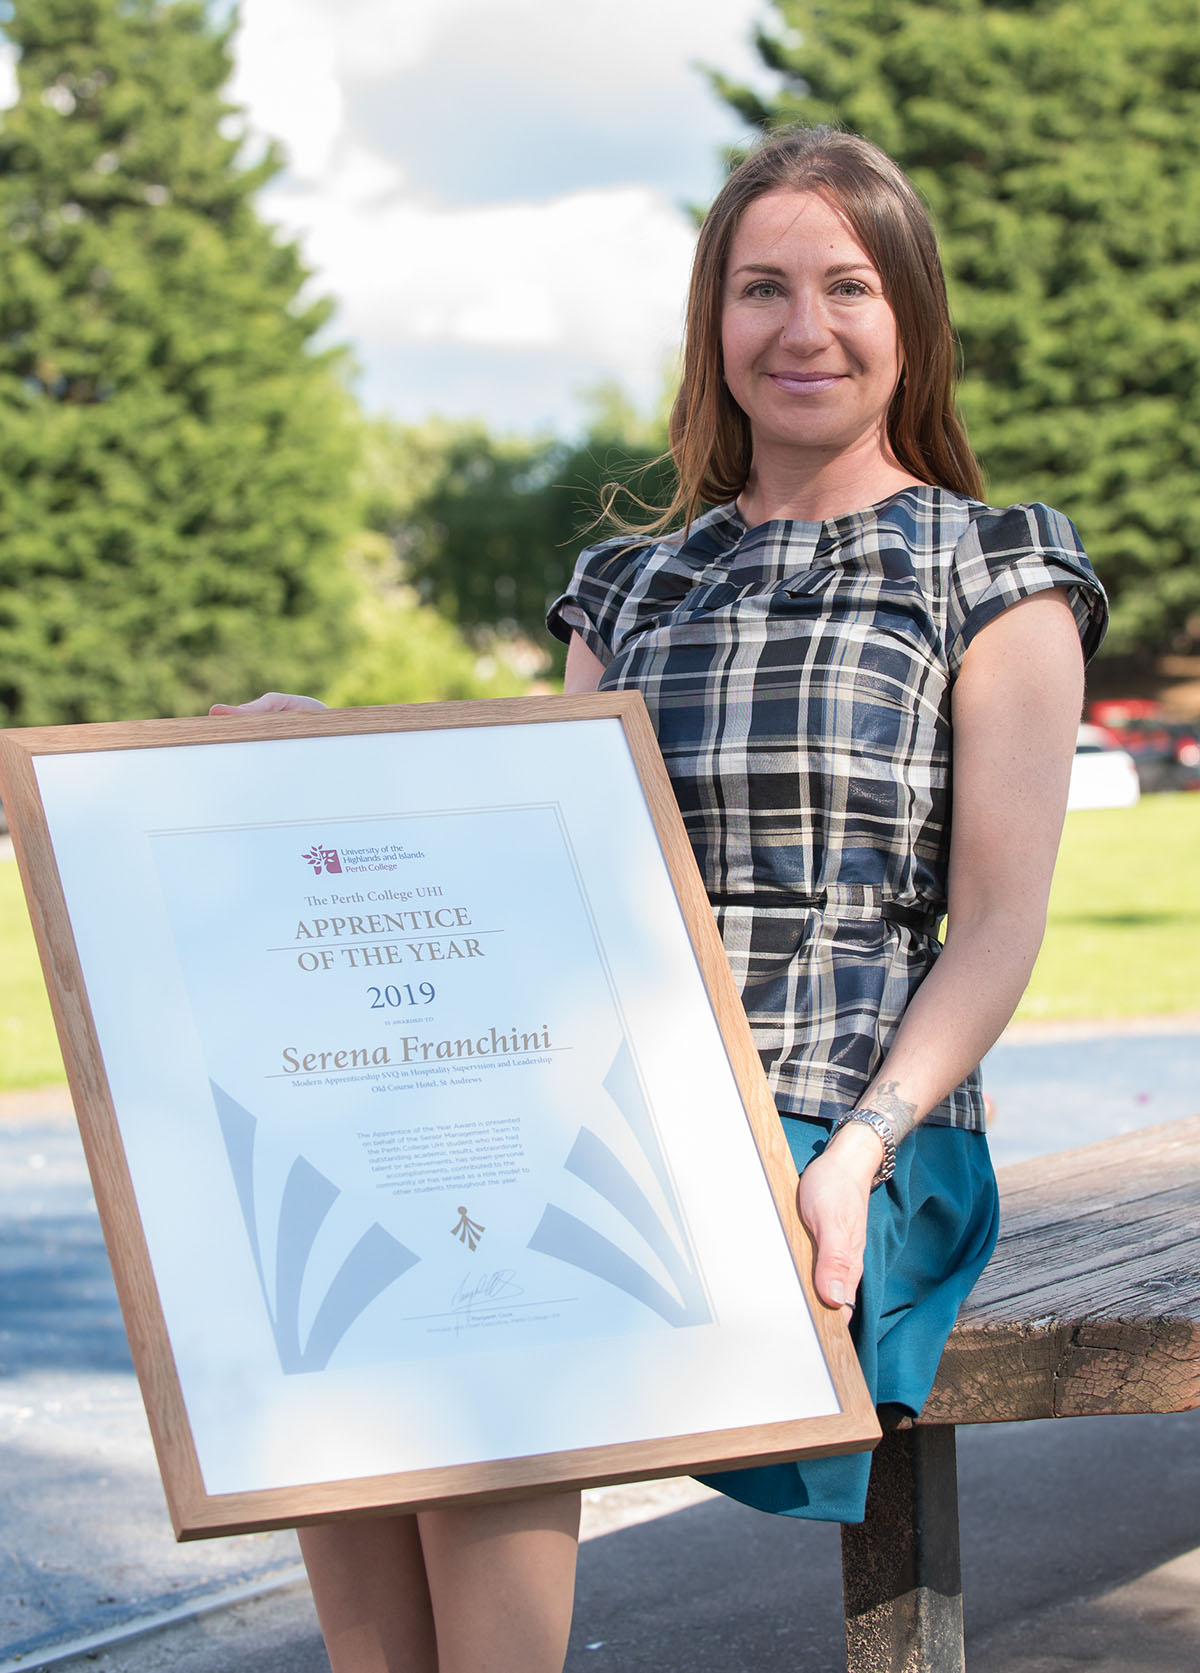 Serena Franchini, Perth College UHI Apprentice of the Year Award 2019 - Joint winner